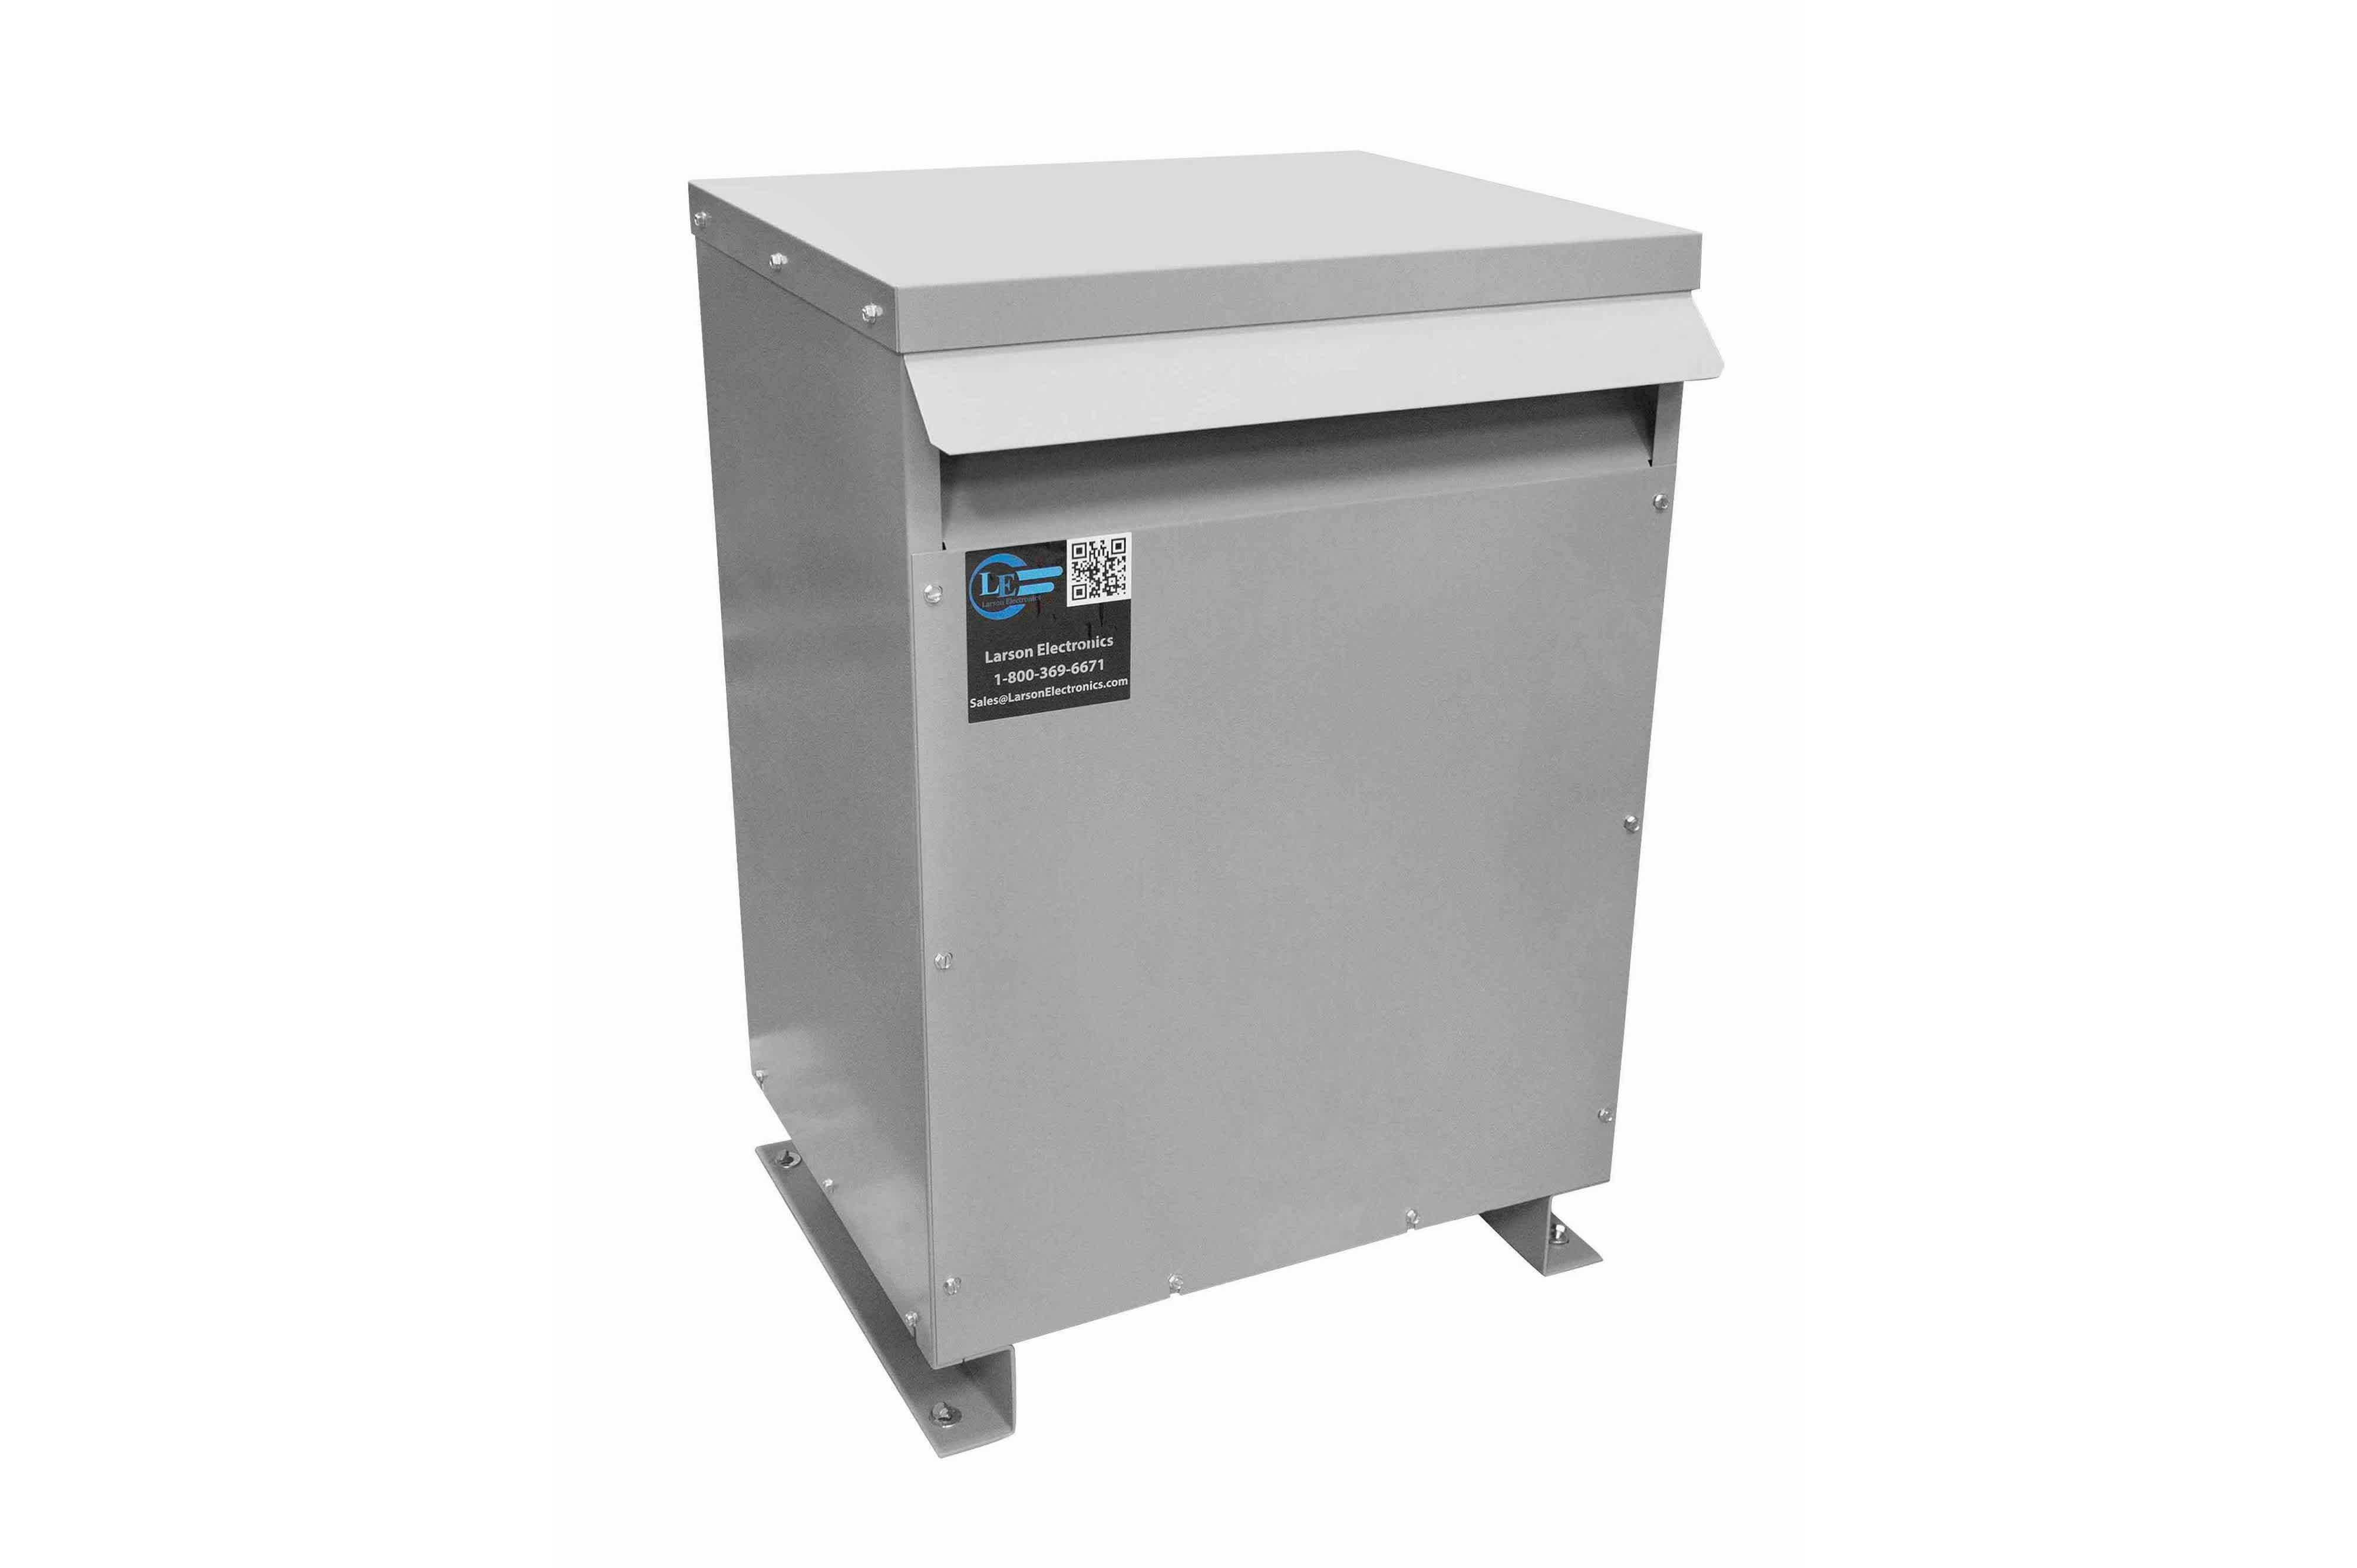 9 kVA 3PH Isolation Transformer, 460V Wye Primary, 415Y/240 Wye-N Secondary, N3R, Ventilated, 60 Hz